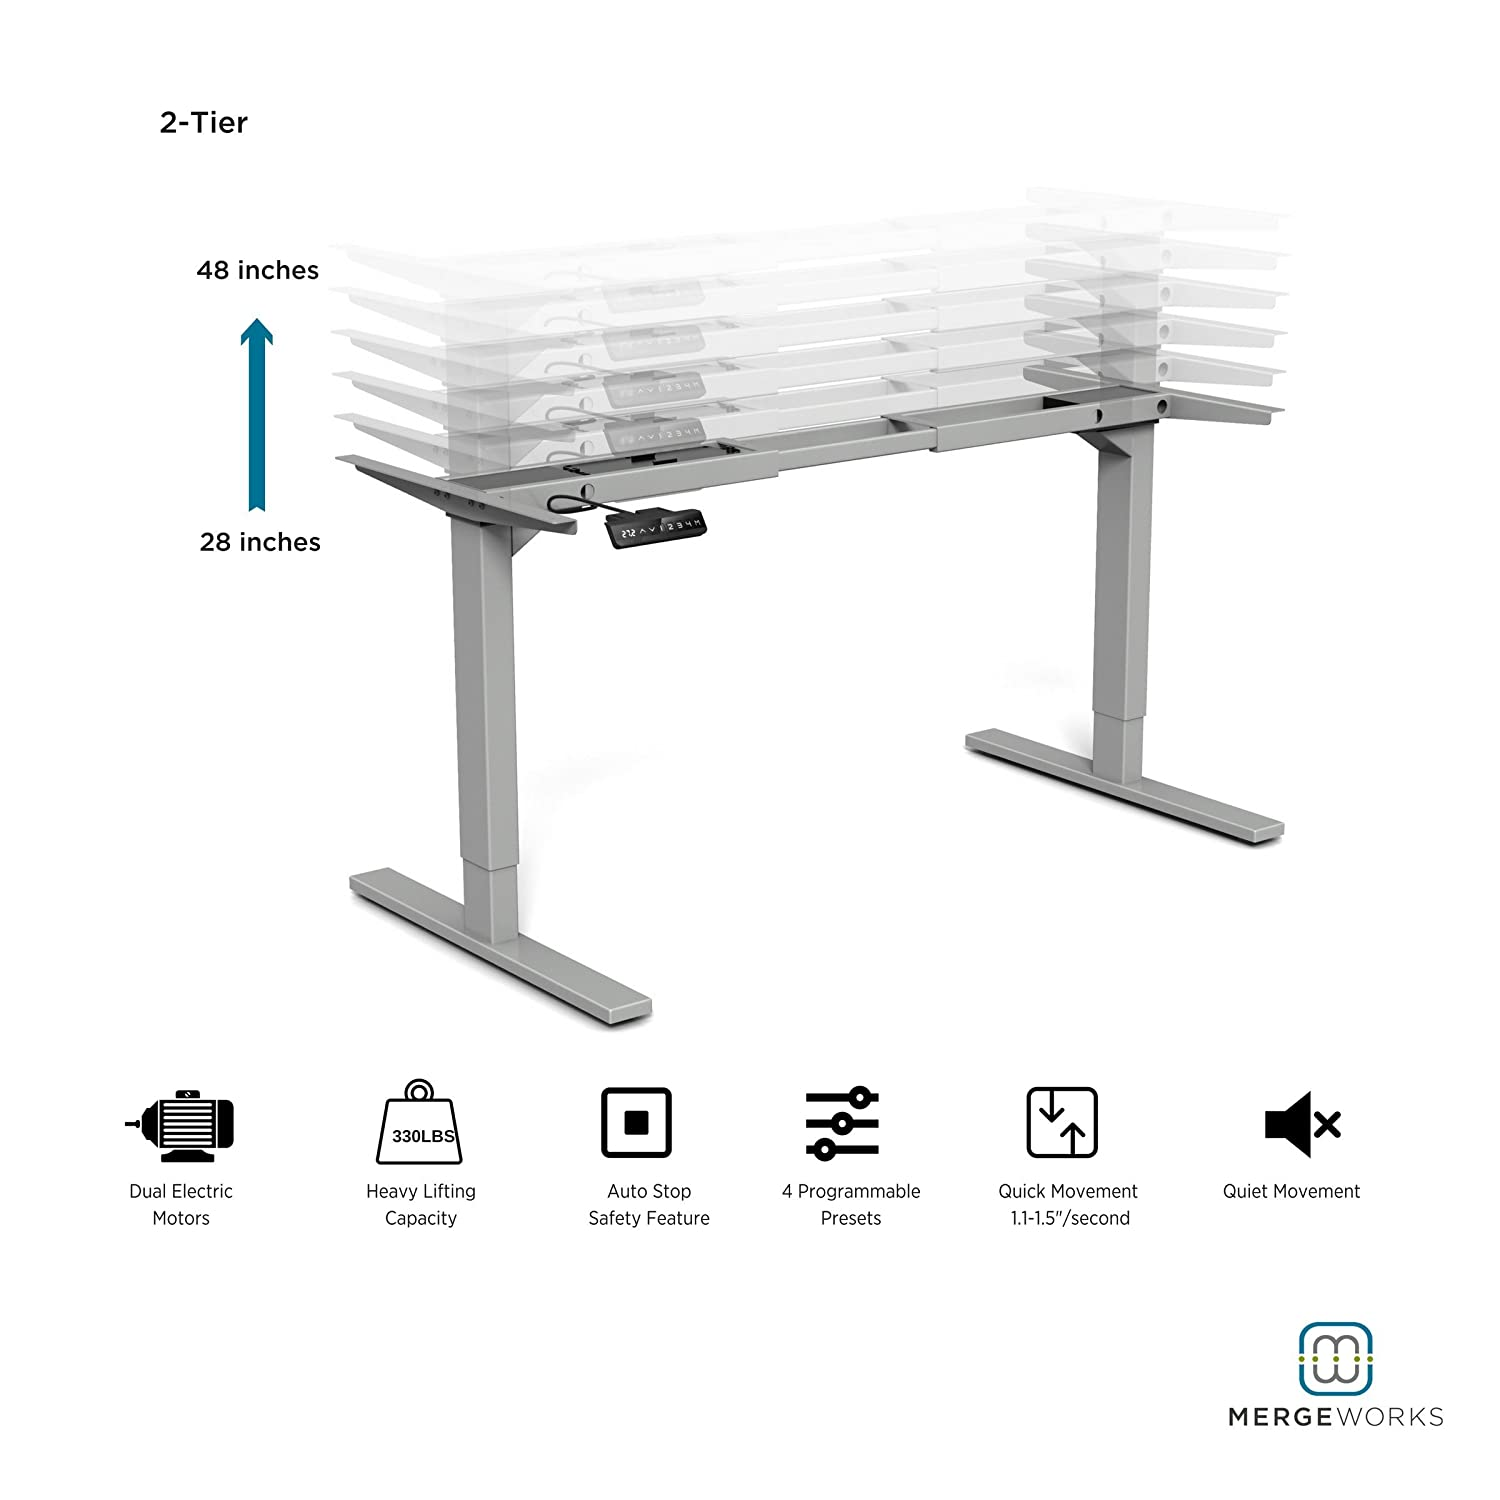 Amazon merge works highrise heavy duty electric height amazon merge works highrise heavy duty electric height adjustable steel frame base for ergonomic sit to stand deskexpanded height width adjustment watchthetrailerfo